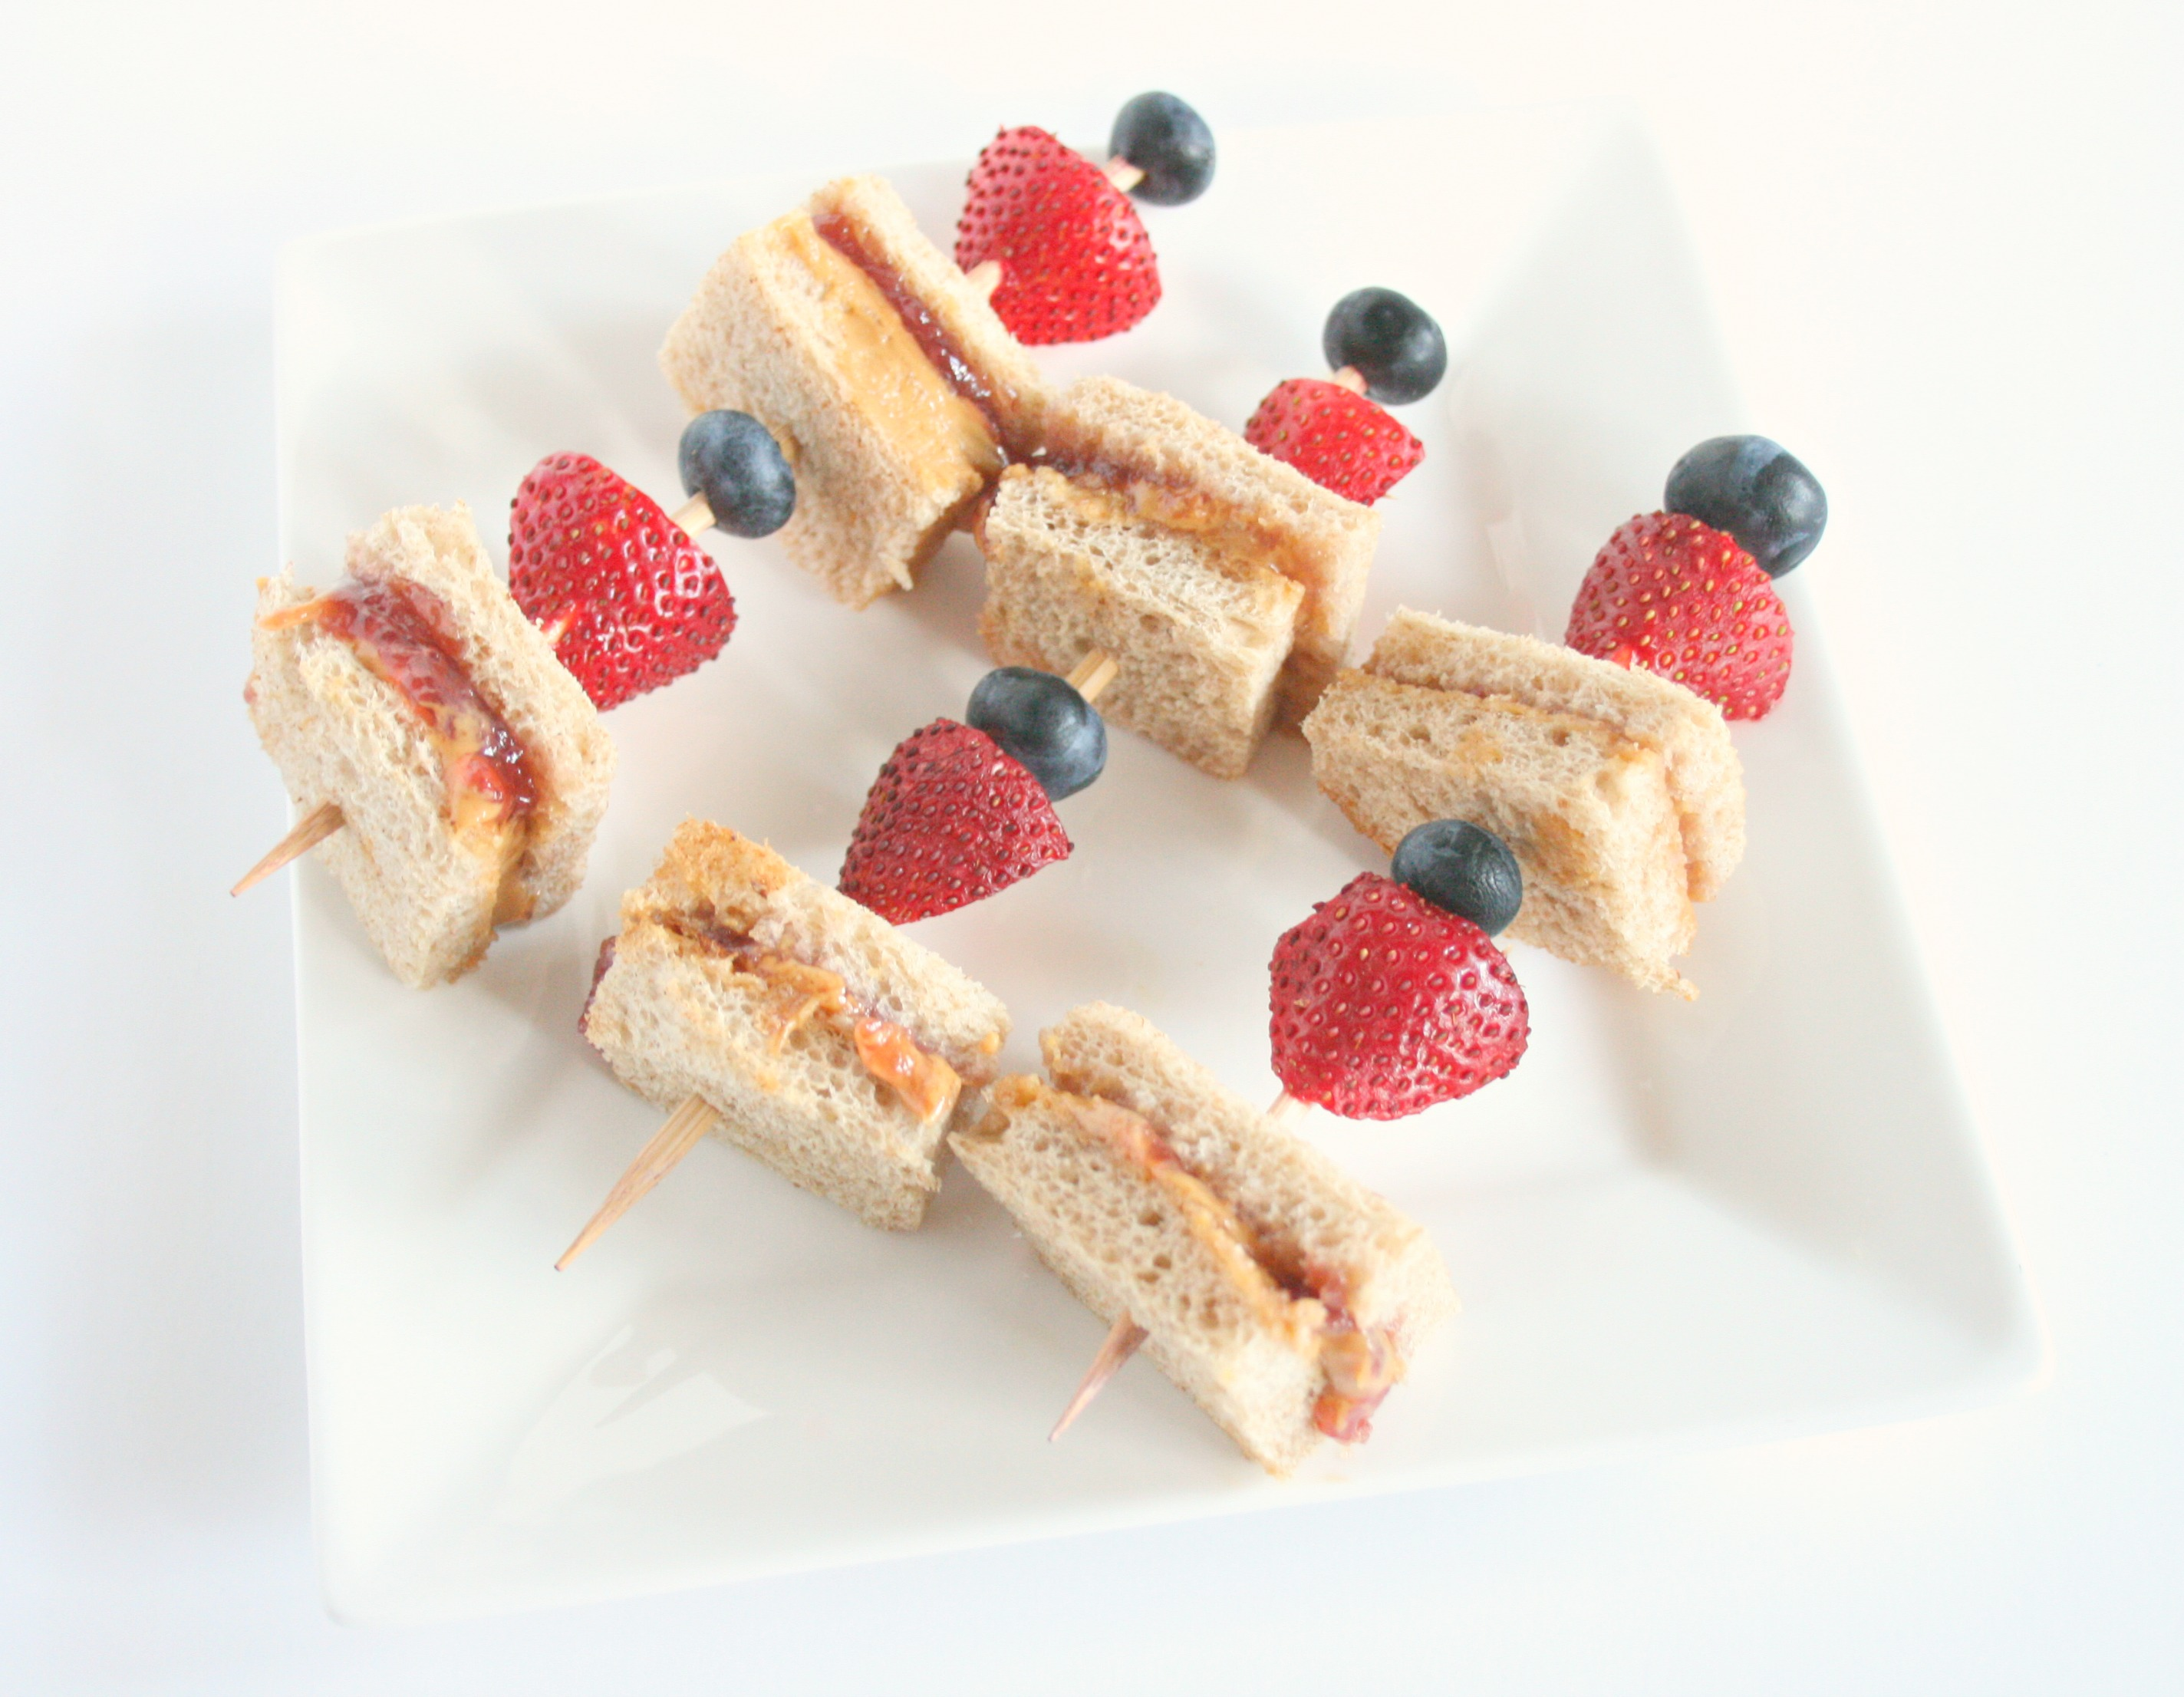 Peanut Butter and Jelly Skewers